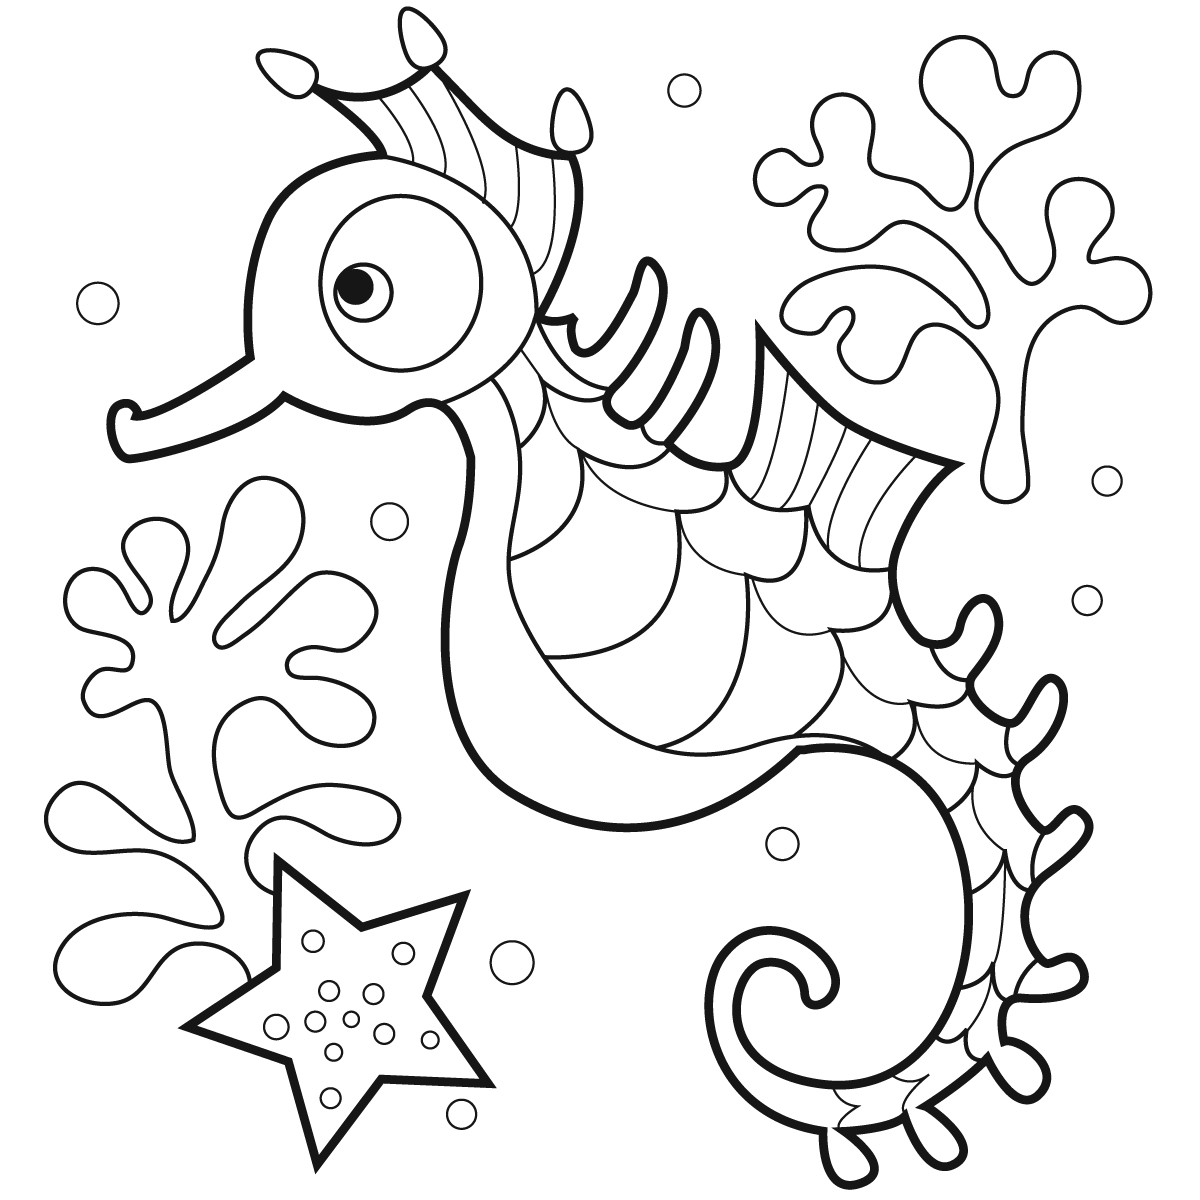 seahorse coloring pages for kids,printable,coloring pages